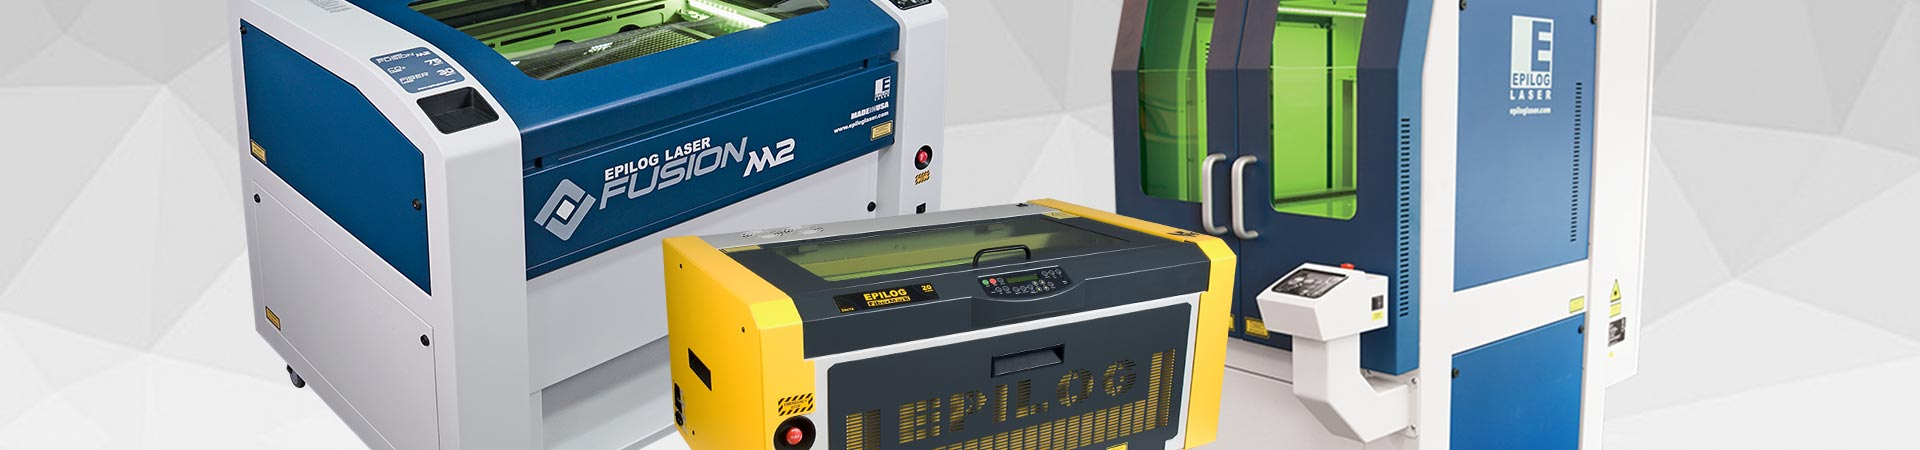 zing laser group machines